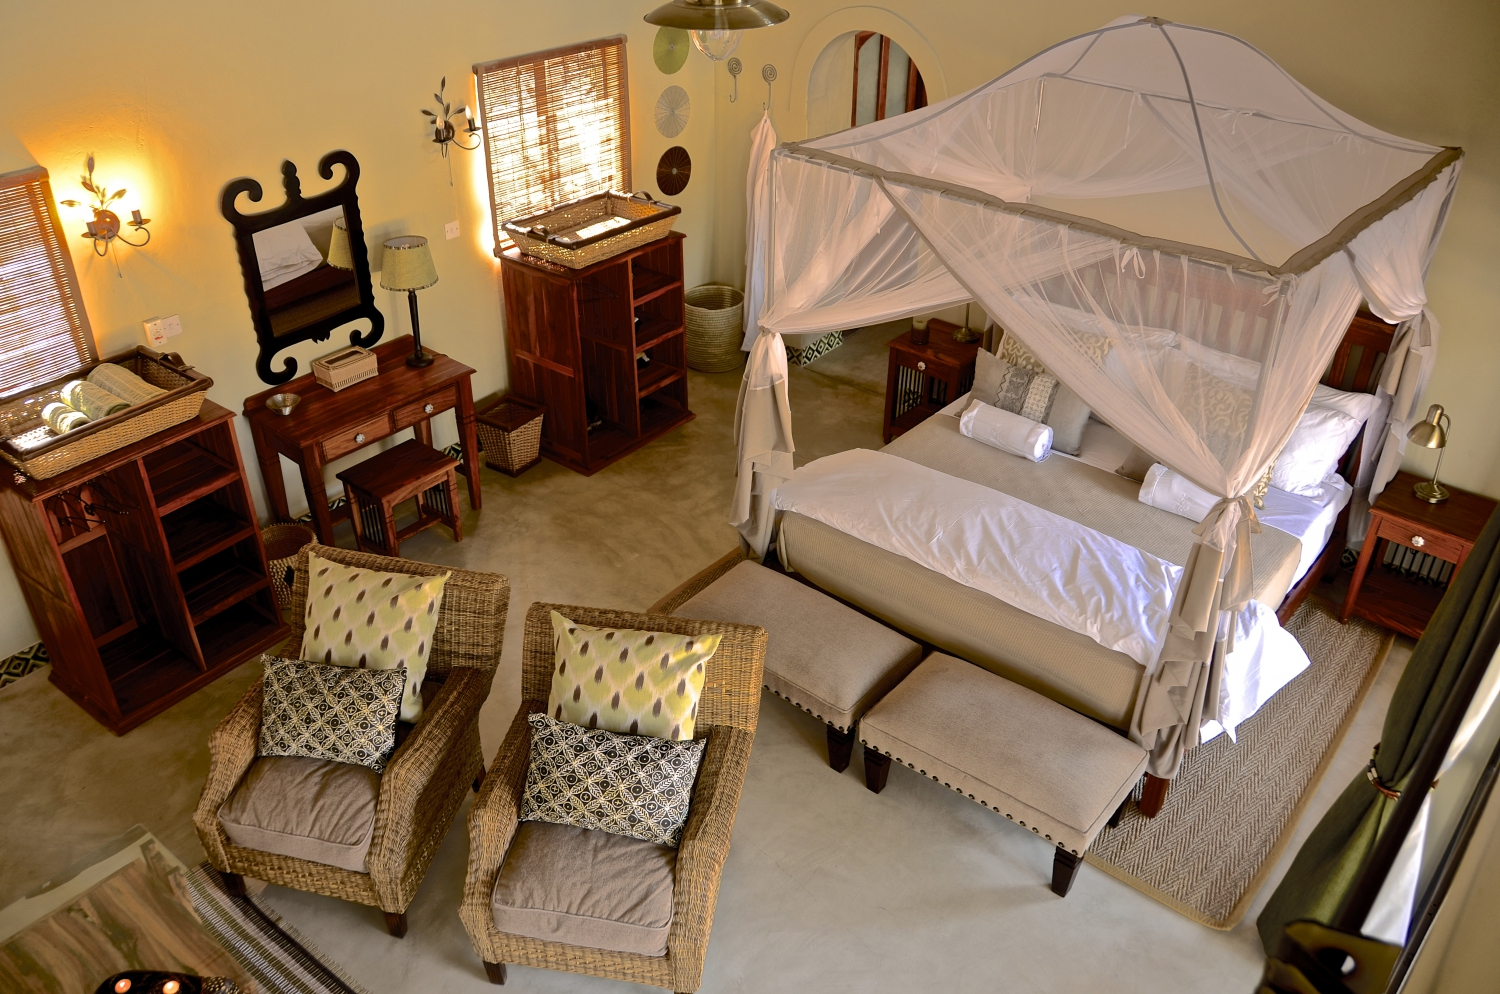 Camelthorn Lodge Stay for 3 Pay for 2 Nights Special